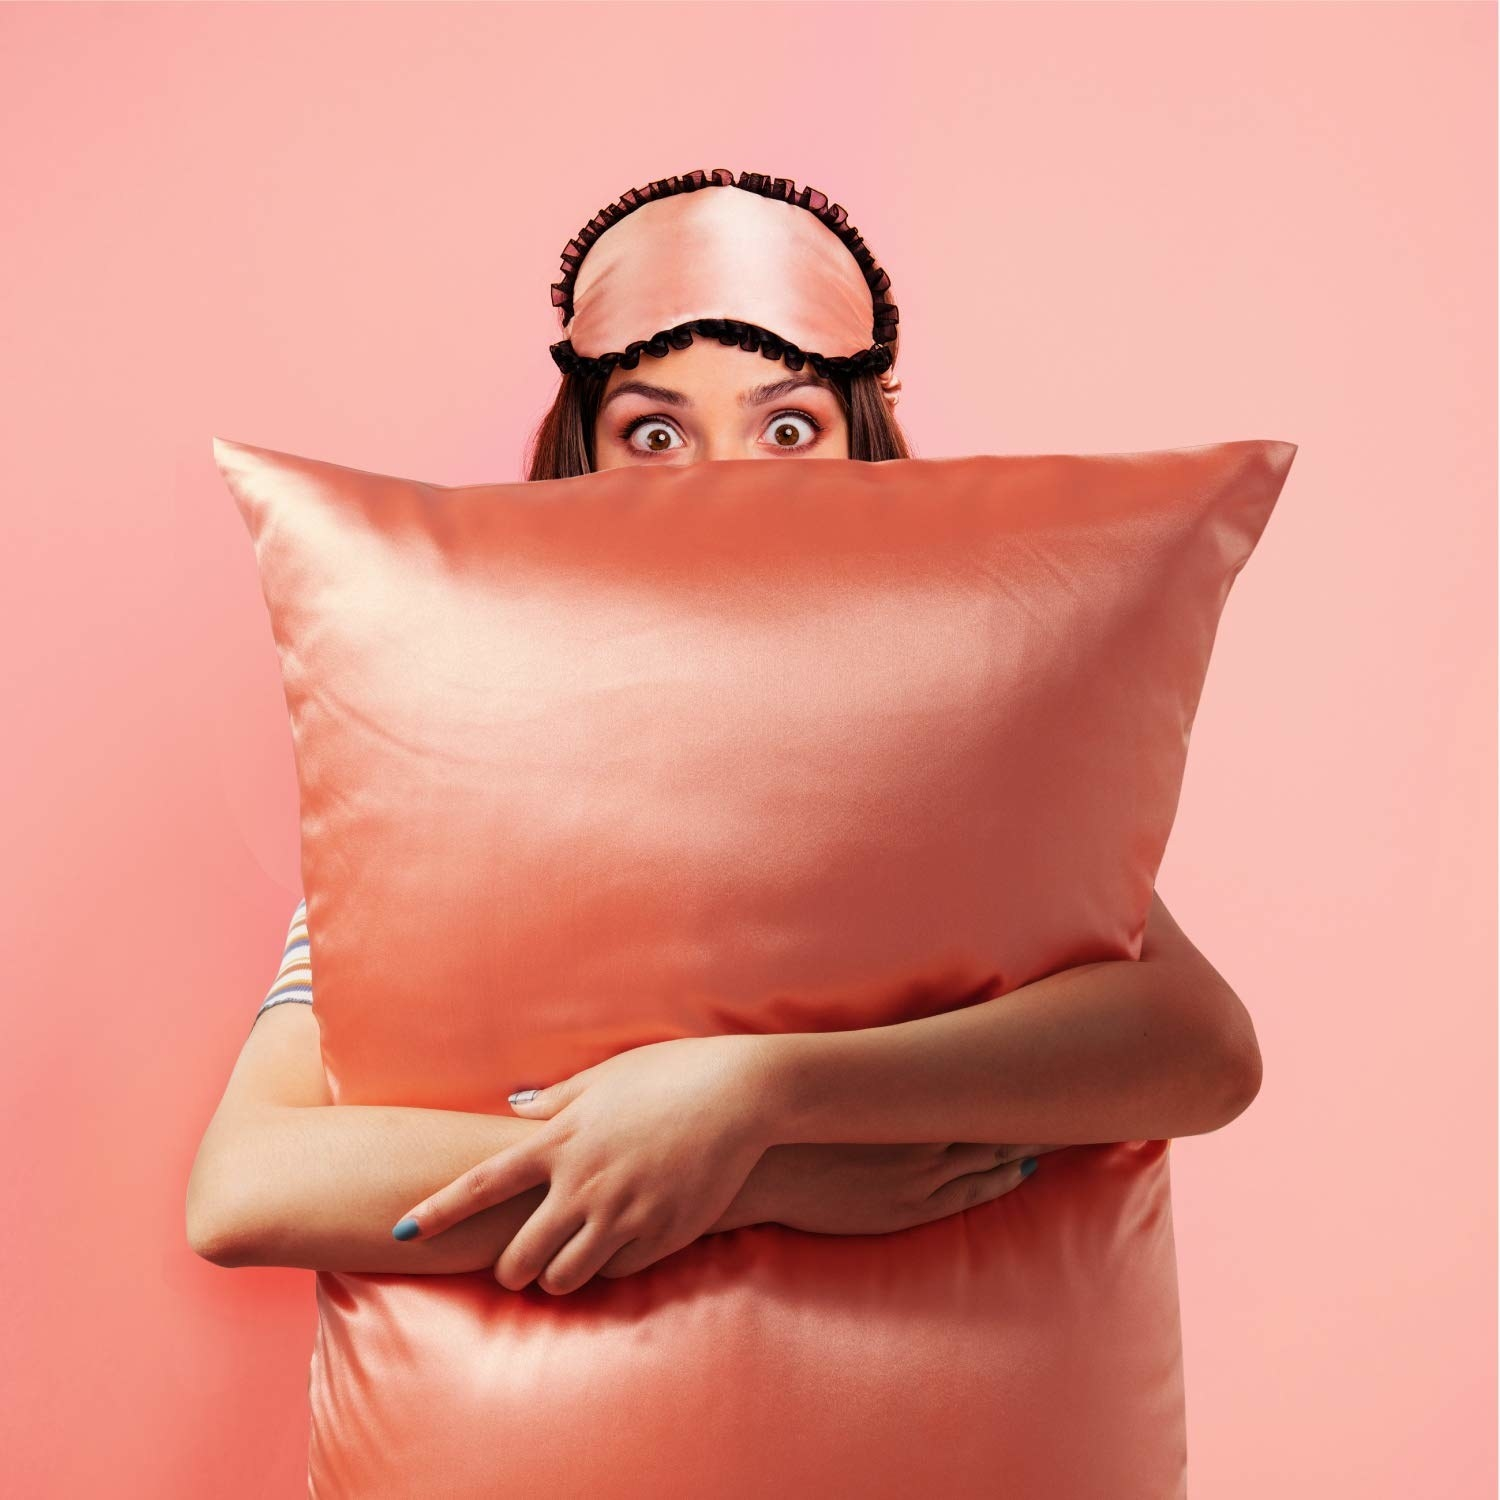 model holding pillow with light pink satin pillowcase